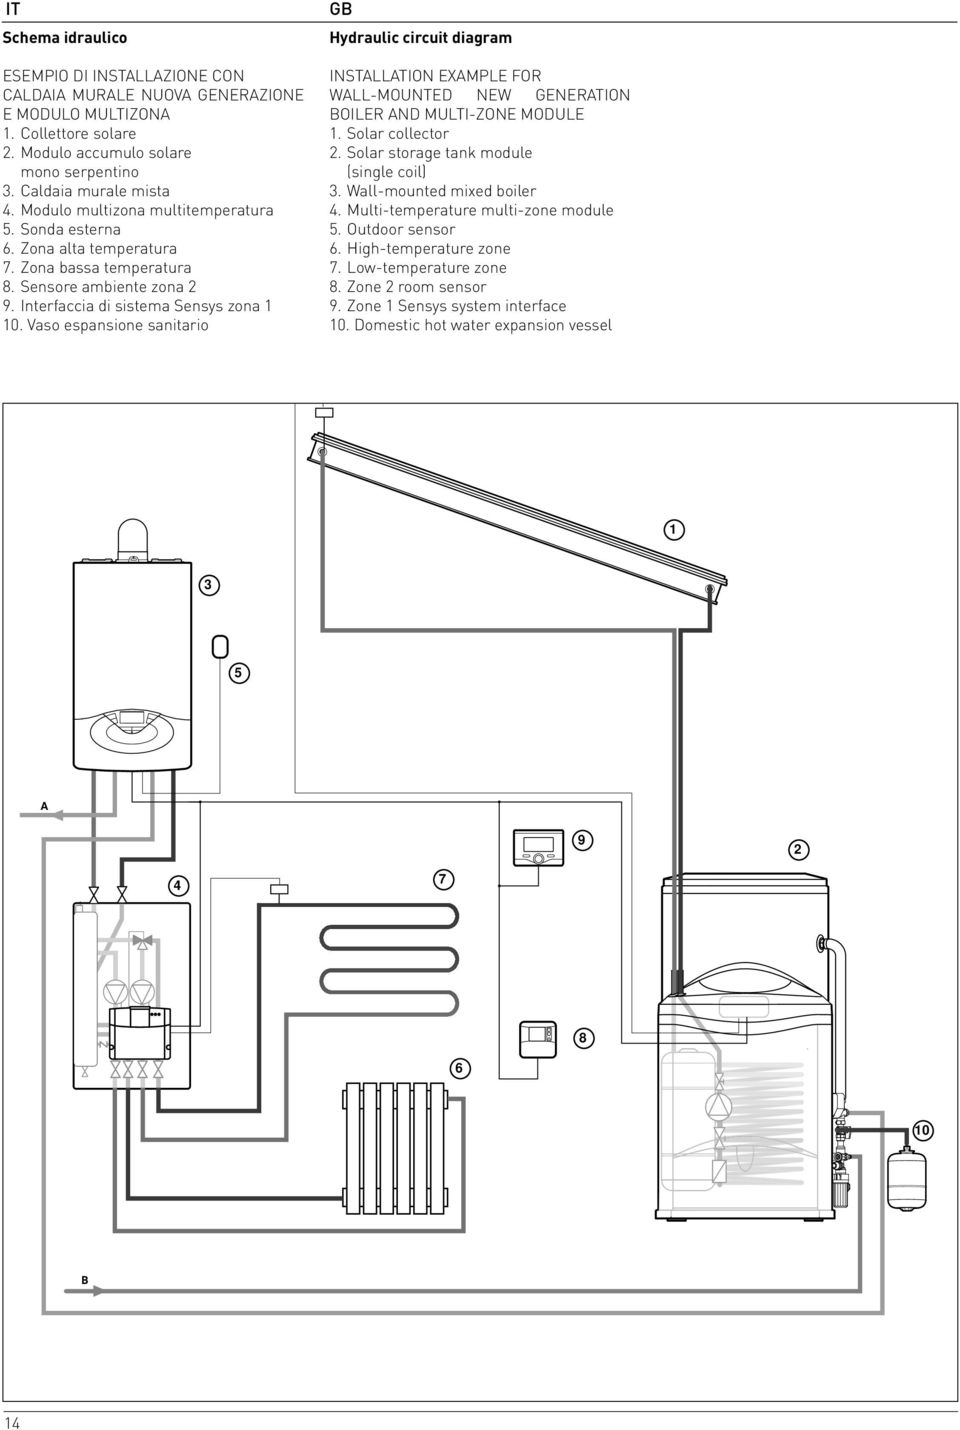 Vaso espansione sanitario Hydraulic circuit diagram INSTALLATION EXAMPLE FOR WALL-MOUNTED NEW GENERATION BOILER AND MULTI-ZONE MODULE 1. Solar collector 2. Solar storage tank module (single coil) 3.